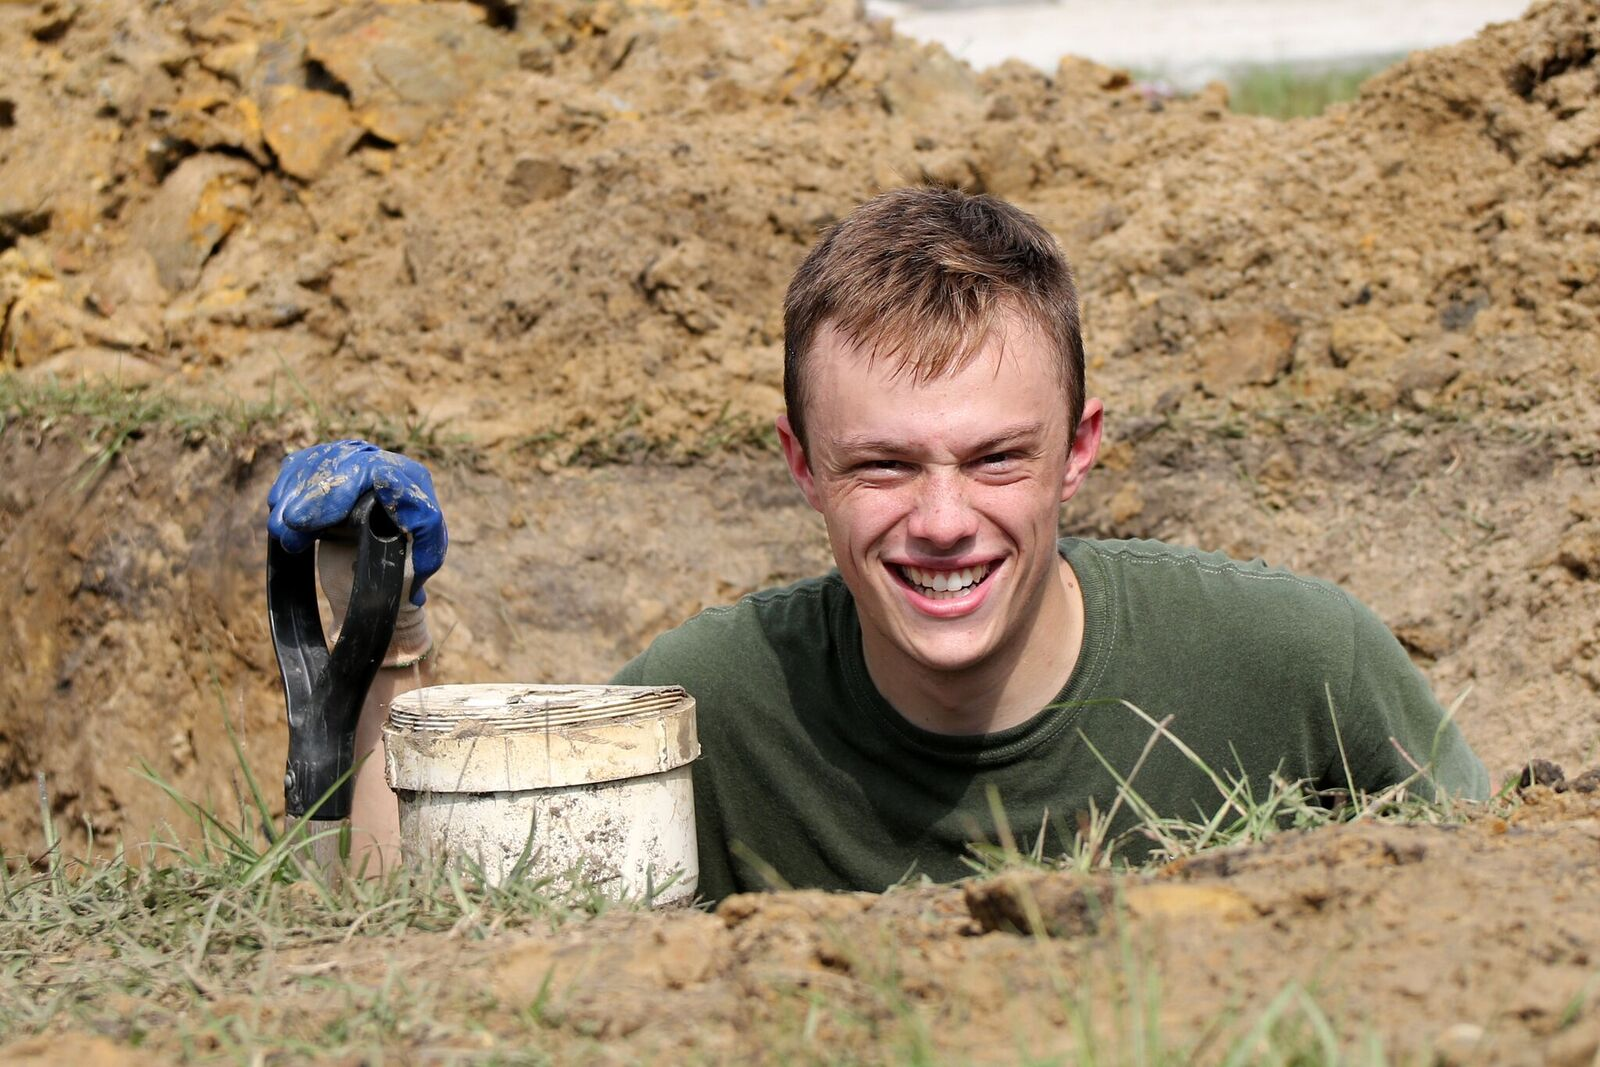 Cadet working on foundation for Habitat home